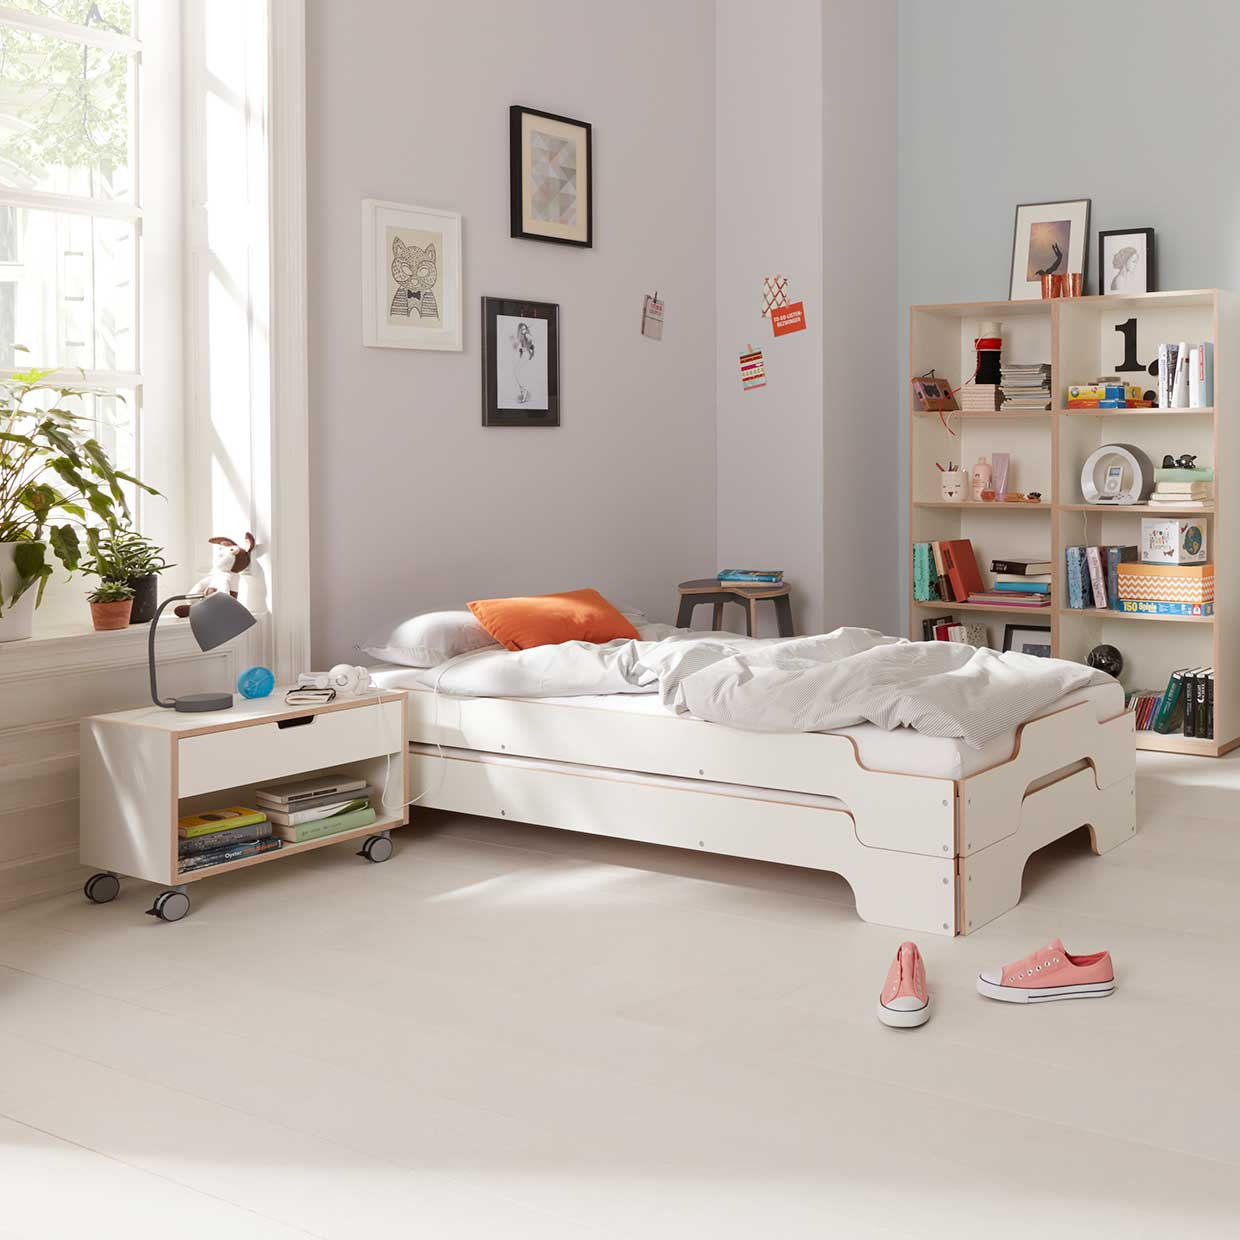 Stapelliege By Müller Möbel Stackable Bed For Children